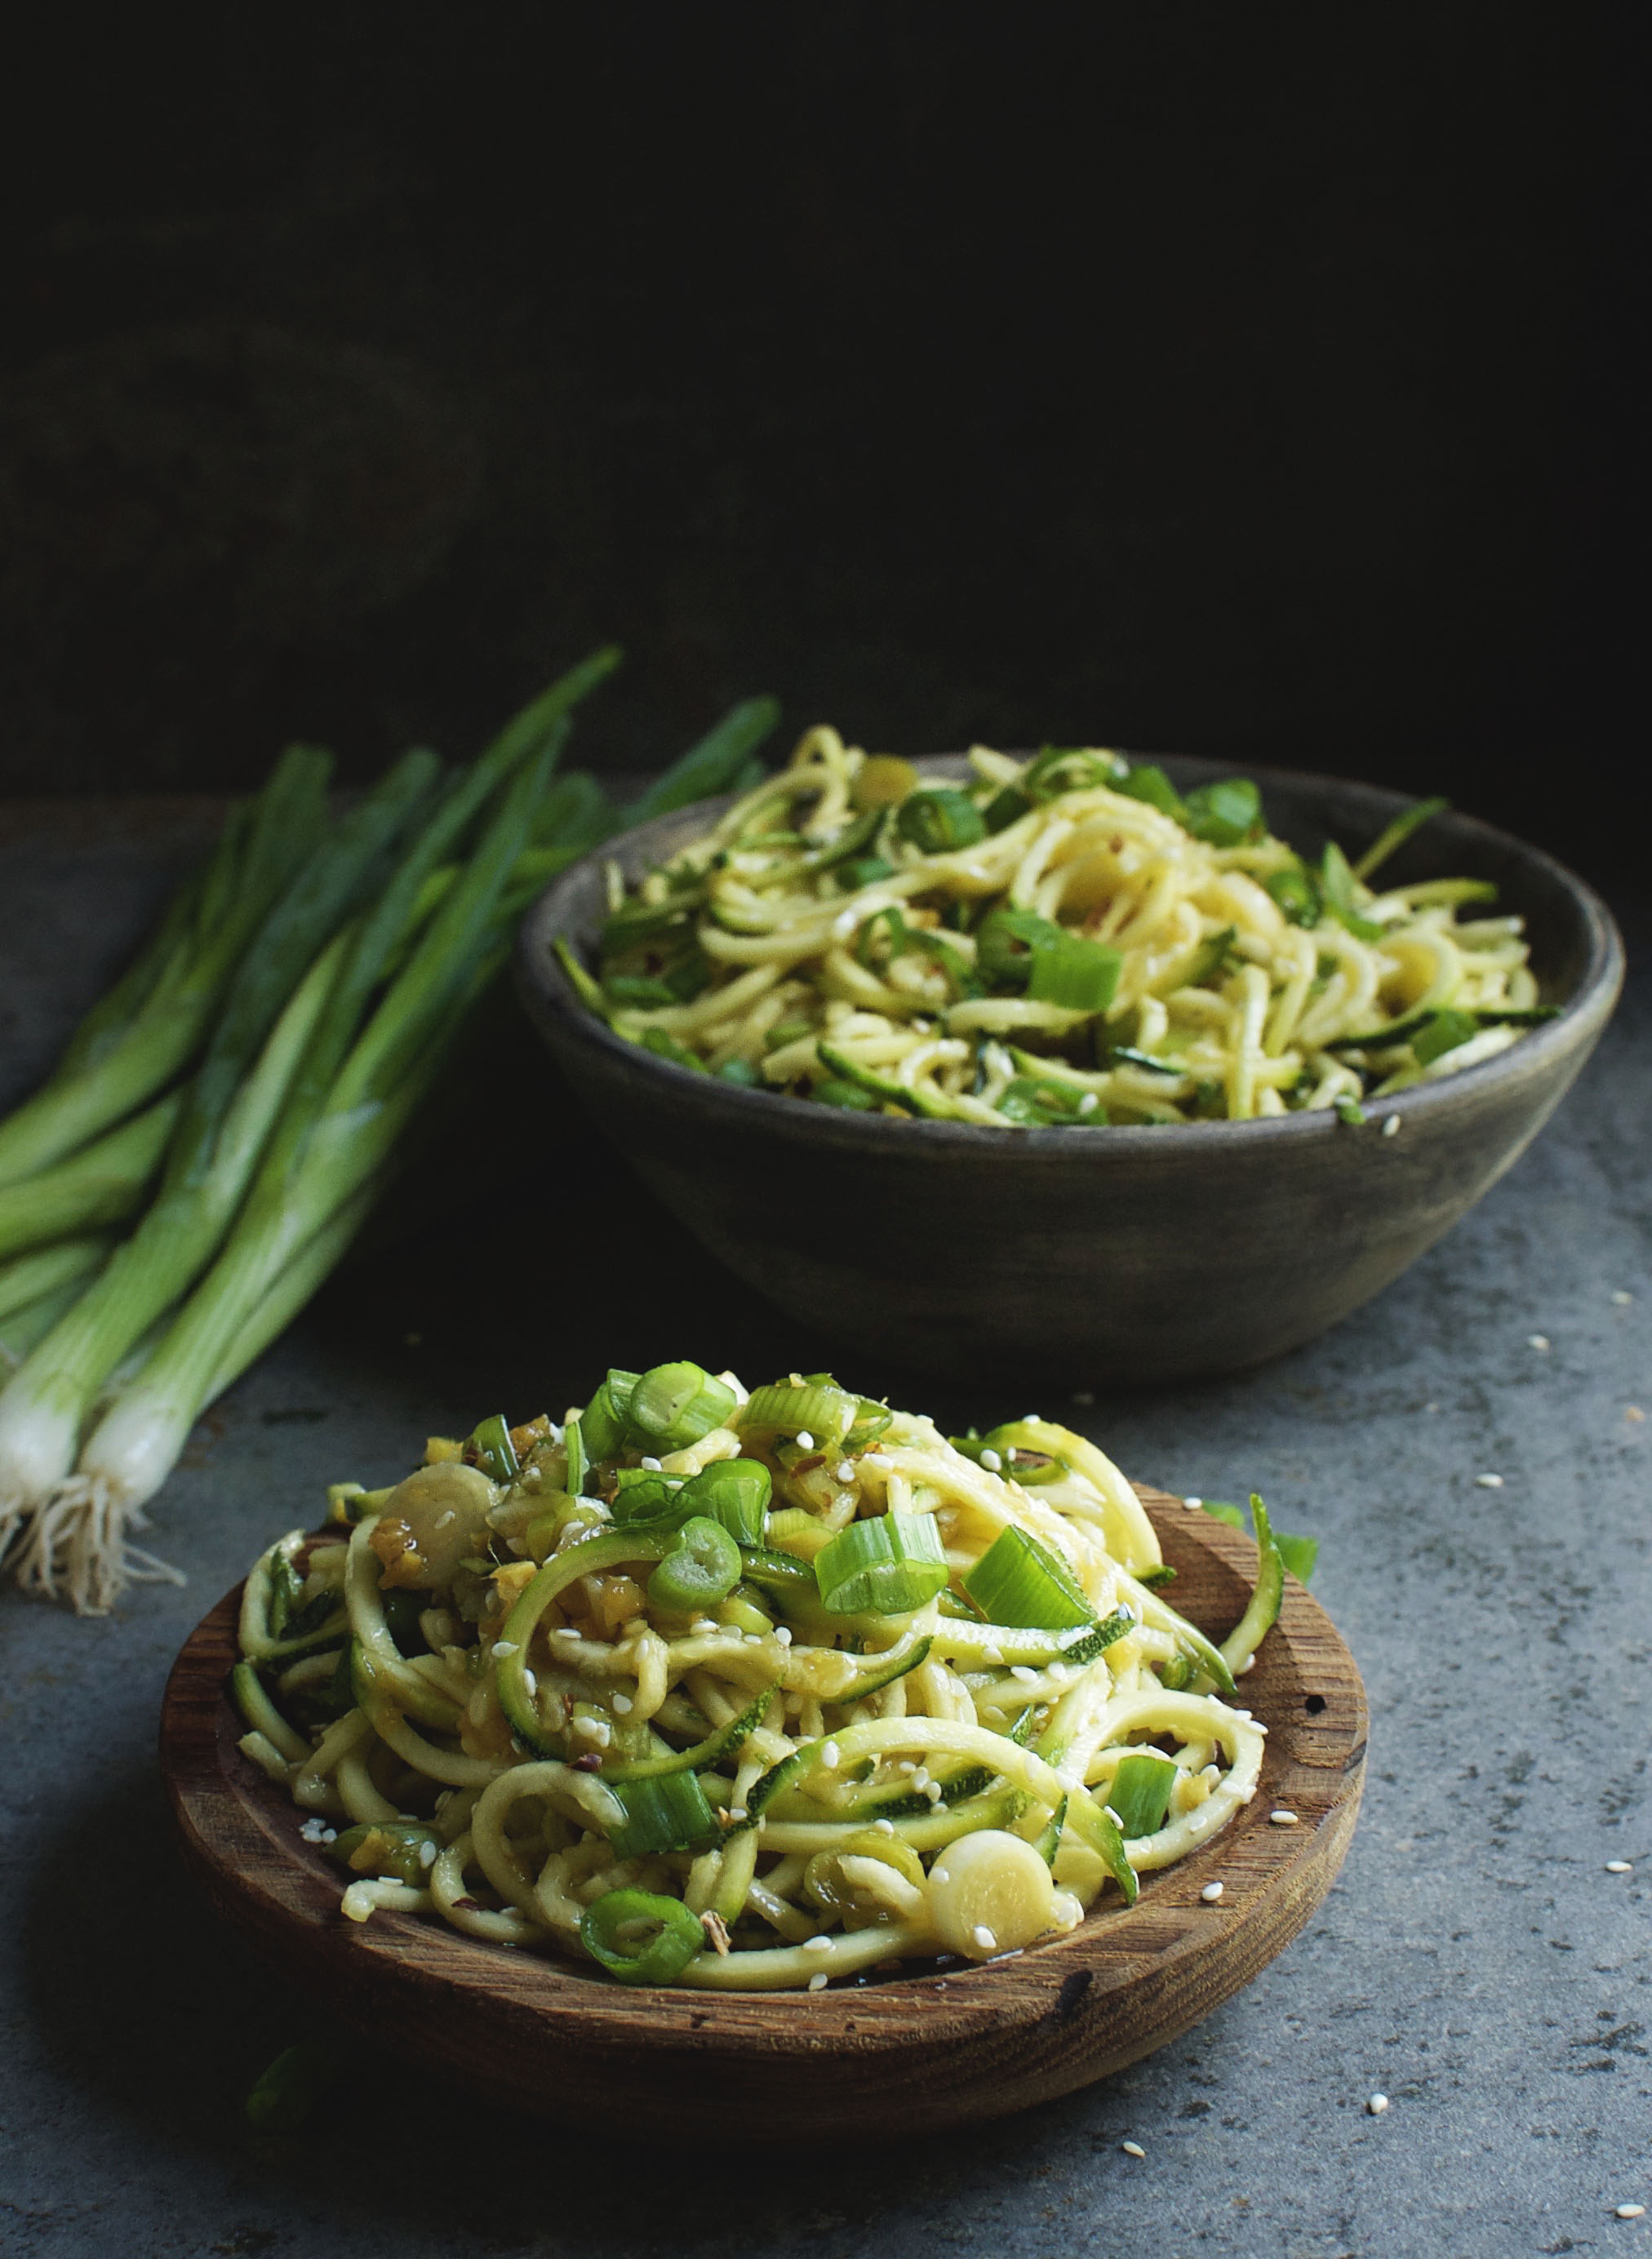 Low-Carb Asian Noodles Recipe - Simply So Healthy